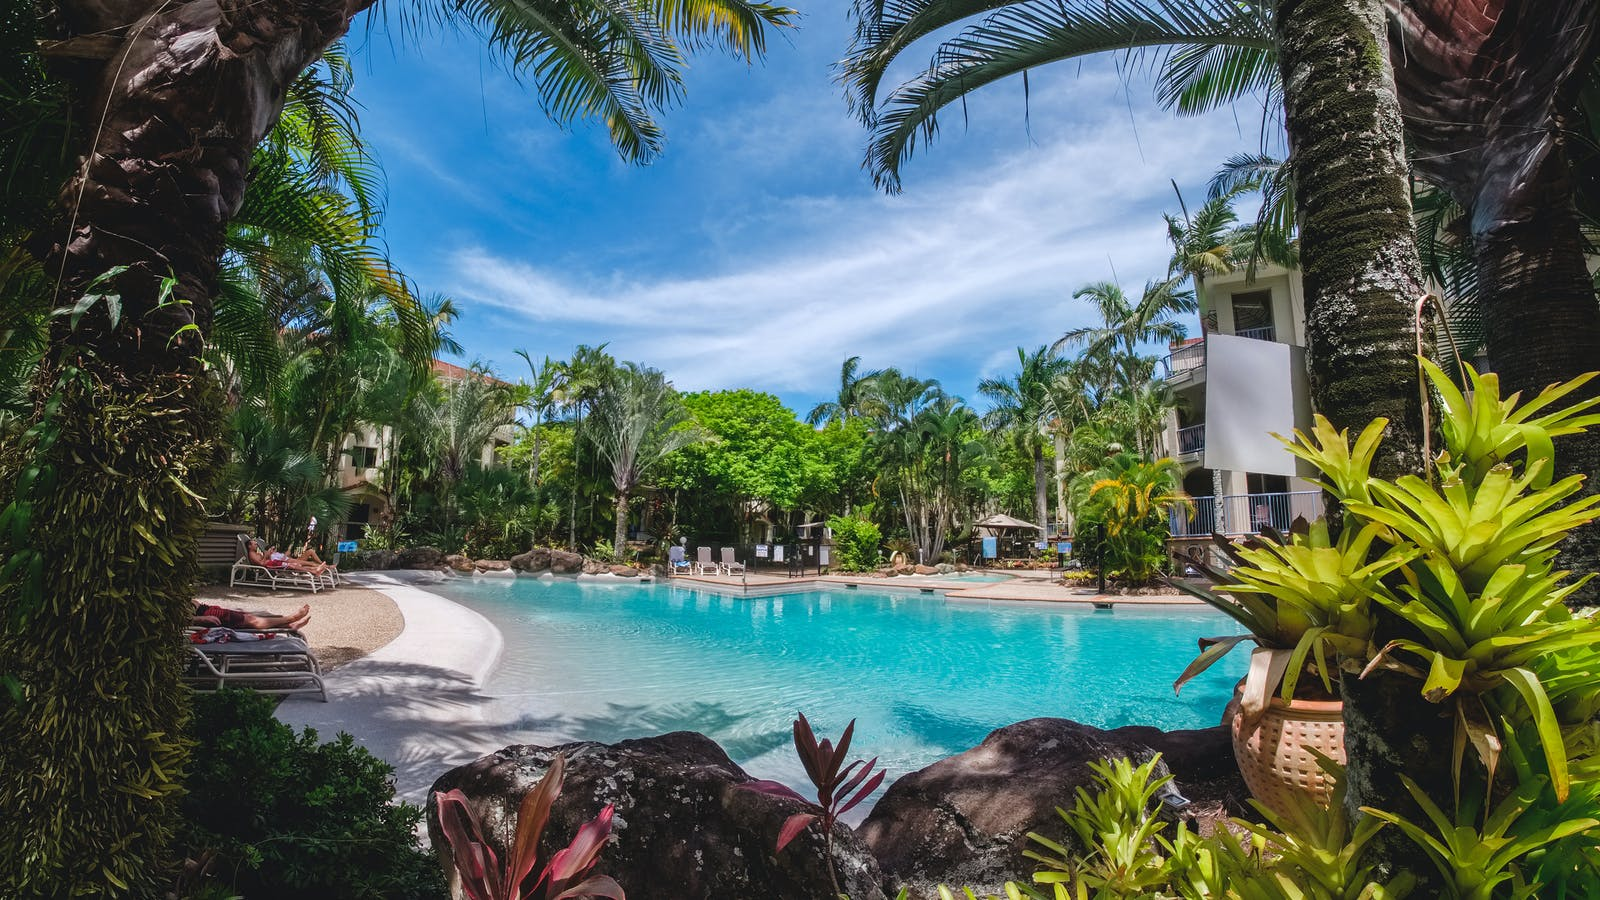 Our pools set in lush tropical gardens